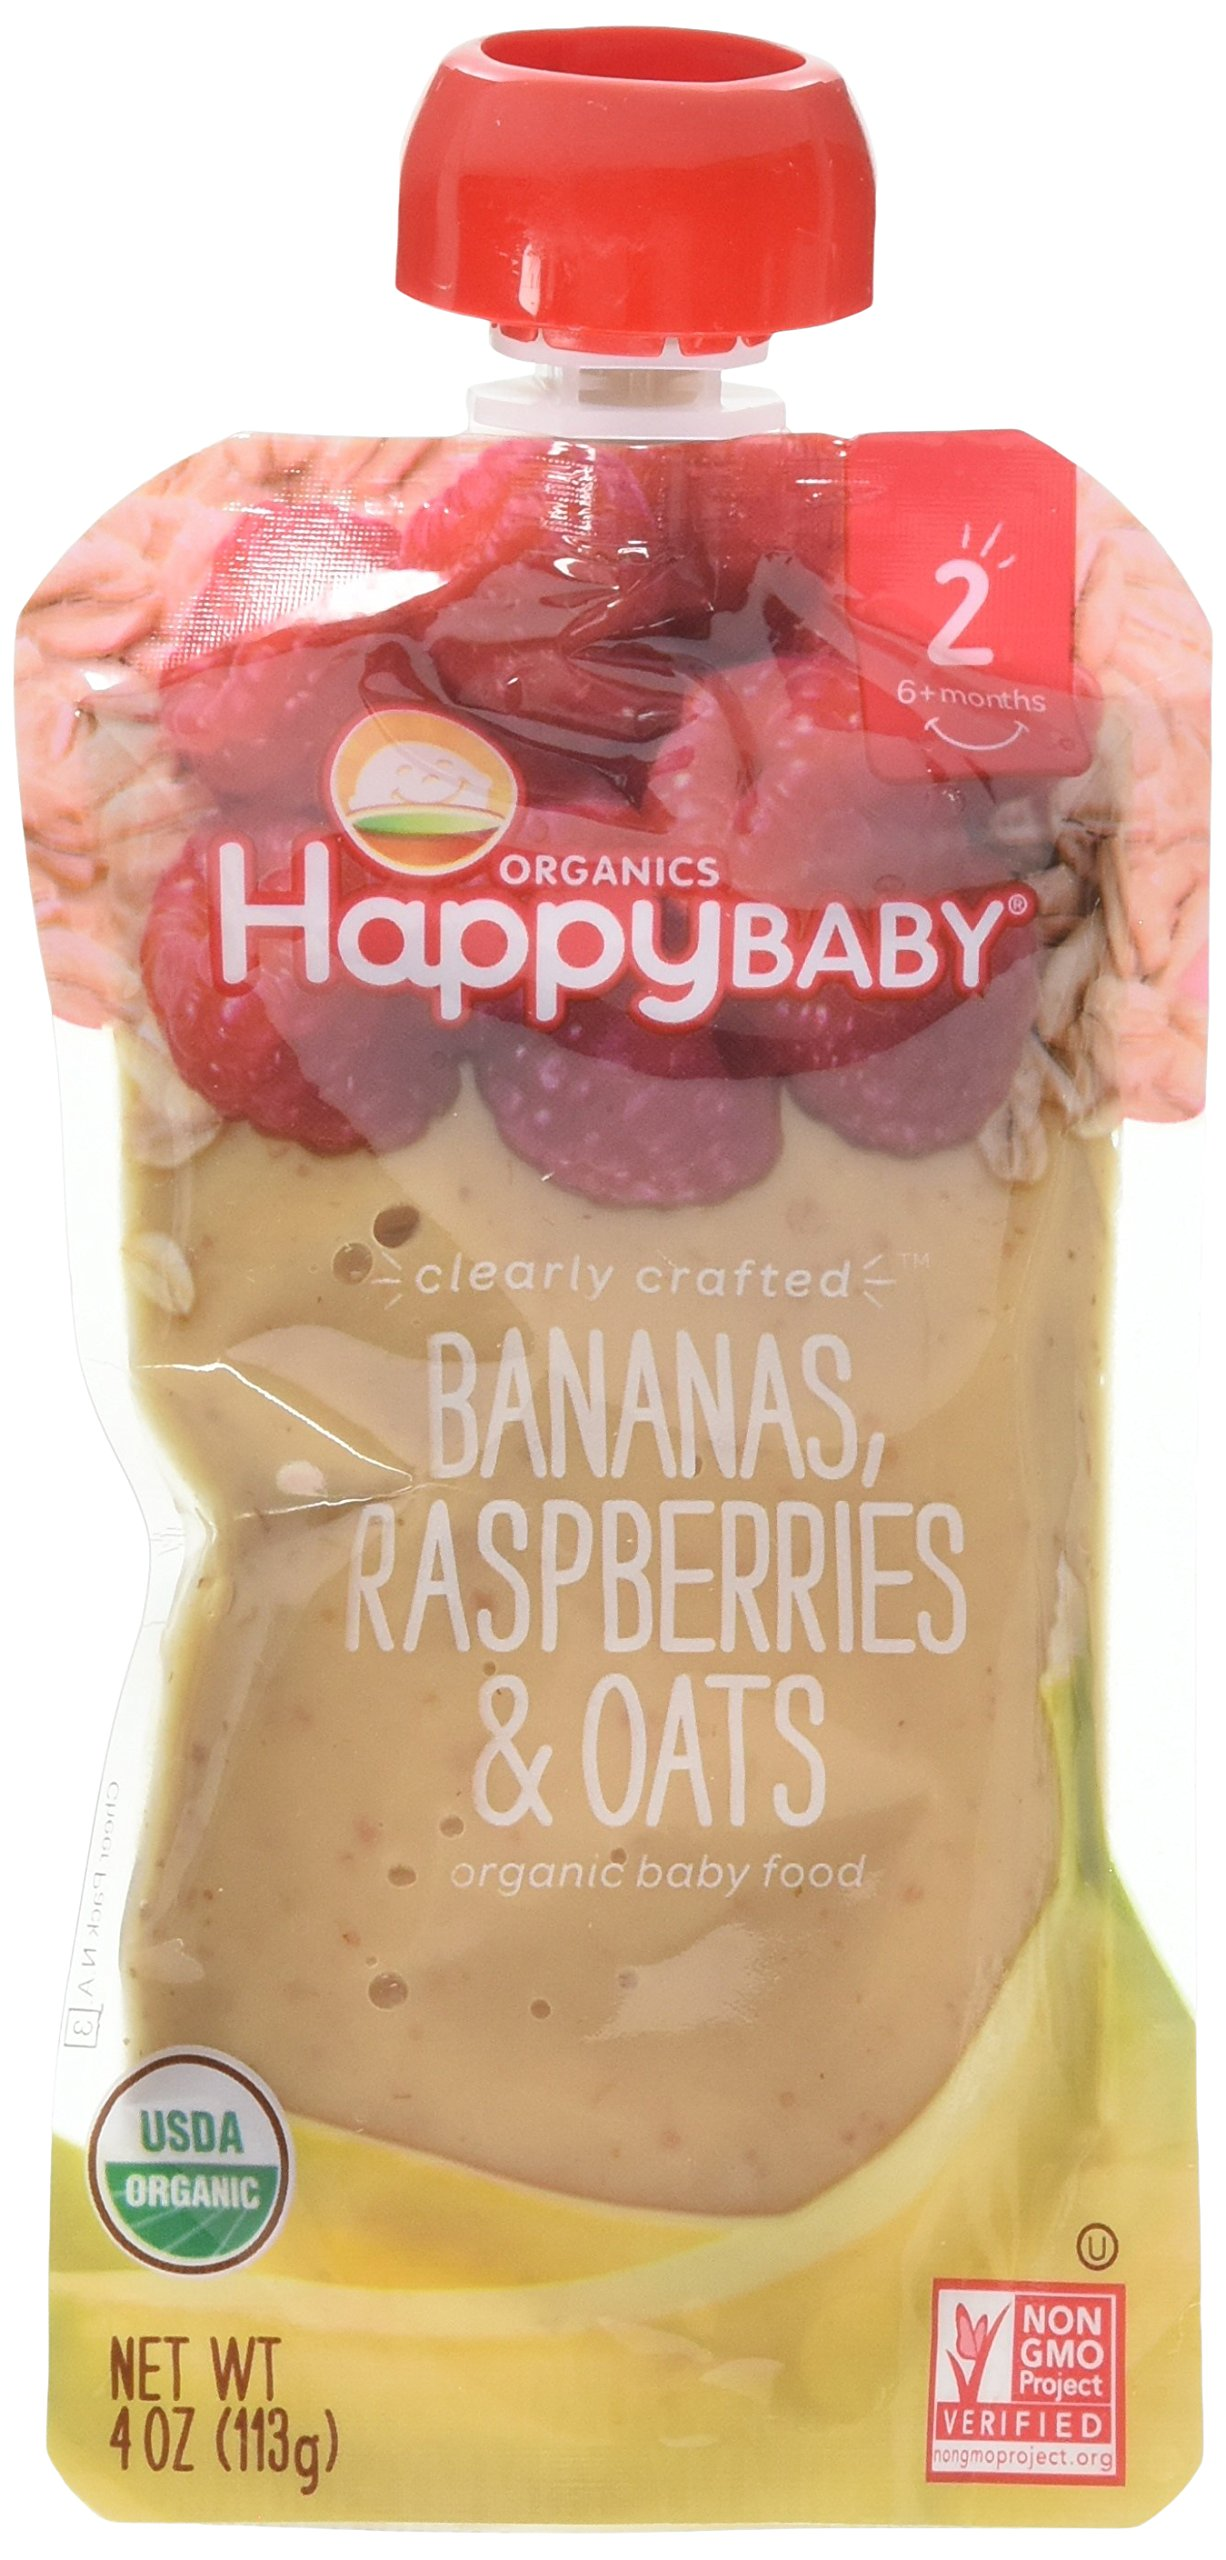 Happy Baby Organic Clearly Crafted Stage 2 Baby Food Bananas Raspberries & Oats, 4 Ounce Pouch Resealable Baby Food Pouches, Fruit & Veggie Puree, Organic Non-GMO Gluten Free Kosher (Pack of 8)